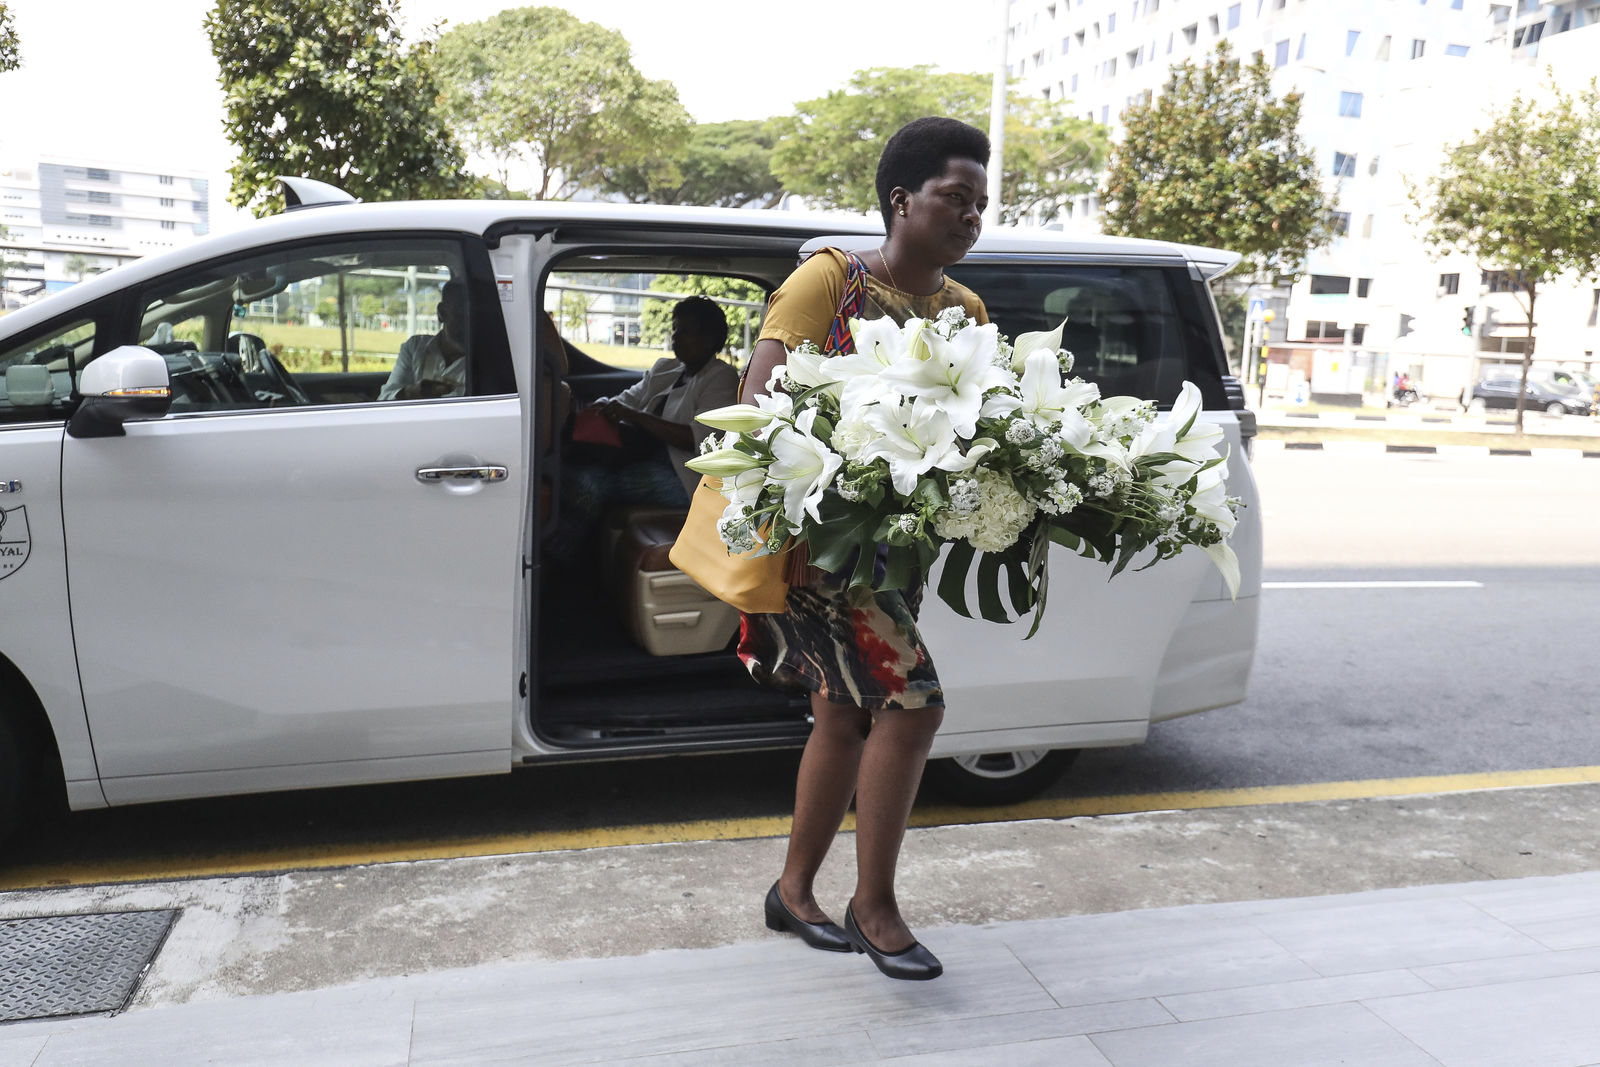 A visitor arrives with a wreath at the Singapore Casket funeral parlor building where the body of the late former president of Zimbabwe is being held on Saturday, Sept. 7, 2019, in Singapore. Robert Mugabe, the former leader of Zimbabwe forced to resign in 2017 after a 37-year rule whose early promise was eroded by economic turmoil, disputed elections and human rights violations, has died in Singapore. He was 95. (AP Photo/Danial Hakim)